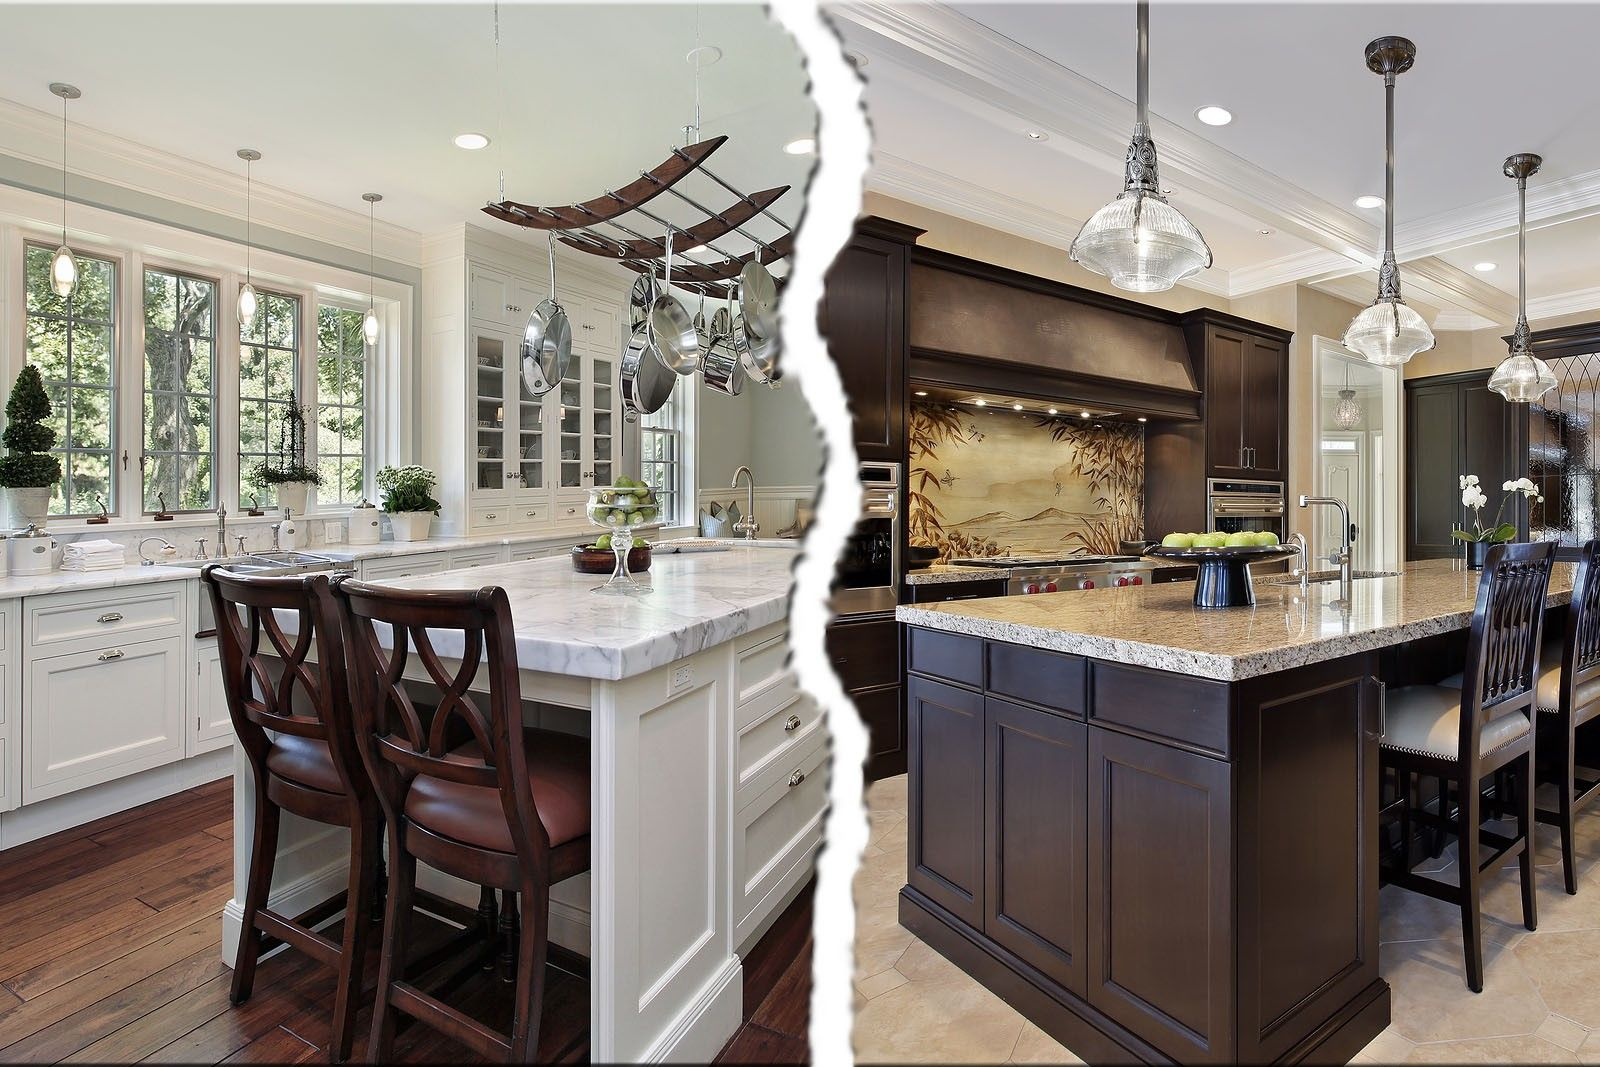 39 Dark Kitchen Cabinets Ideas Dark Colors Are Indeed The Colors That Are Preferred So It S No Won Dark Kitchen Cabinets Dark Kitchen Light Kitchen Cabinets